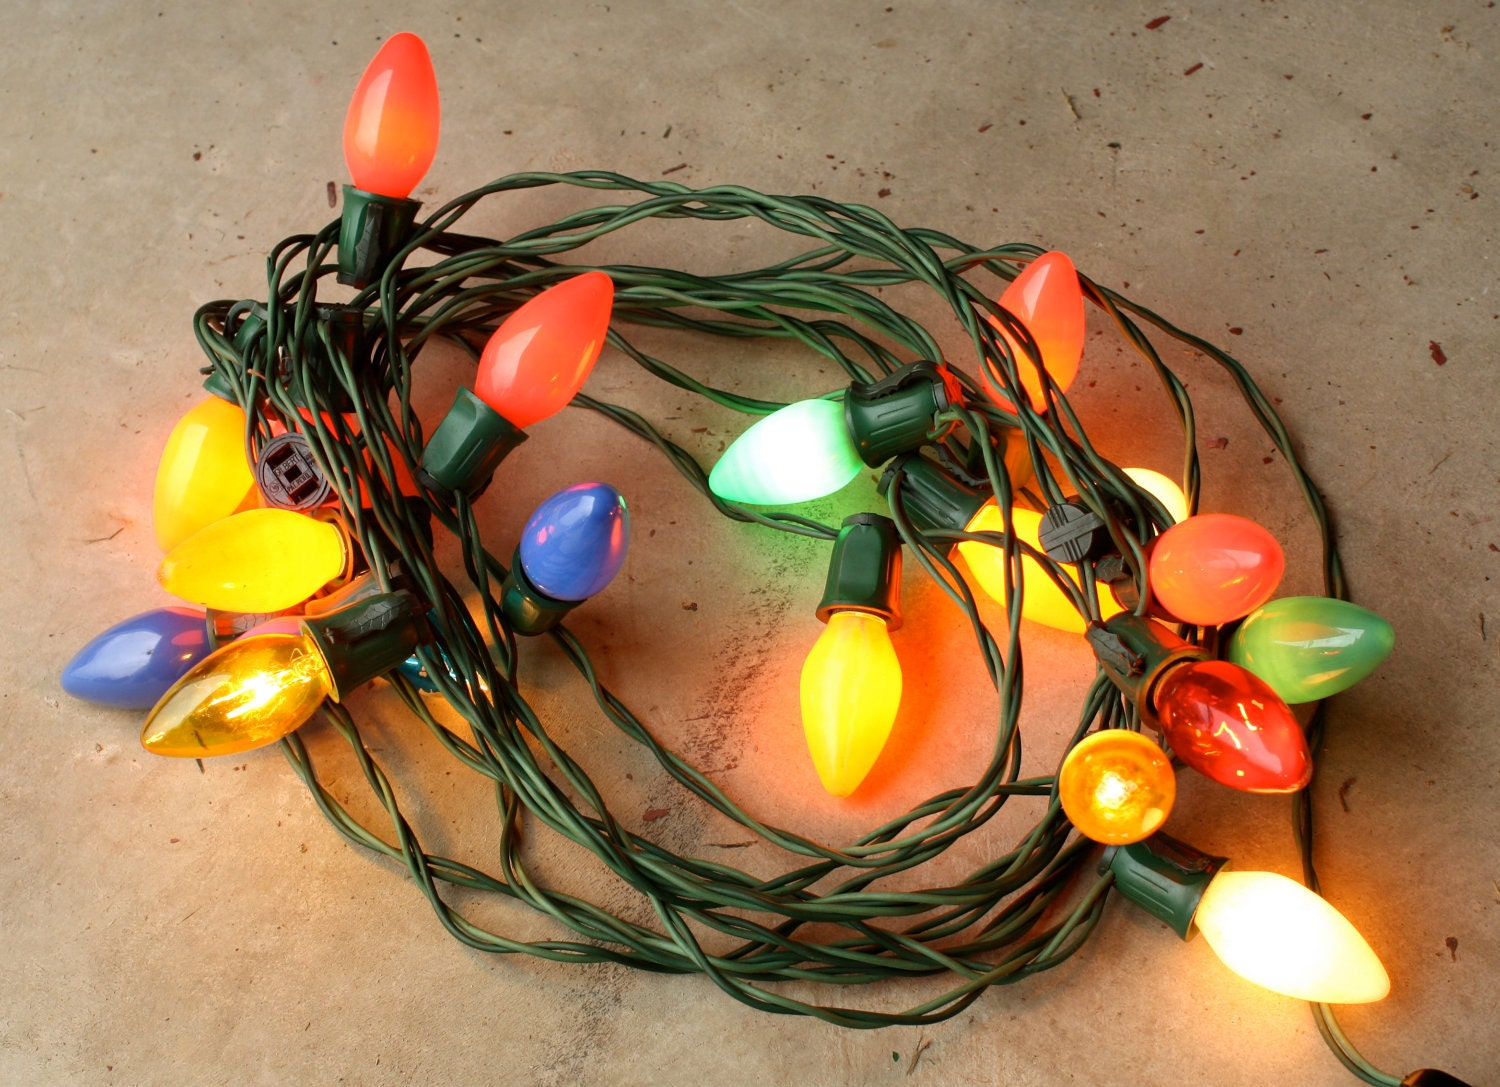 20 ft strand of vintage large bulb christmas tree lights. Black Bedroom Furniture Sets. Home Design Ideas